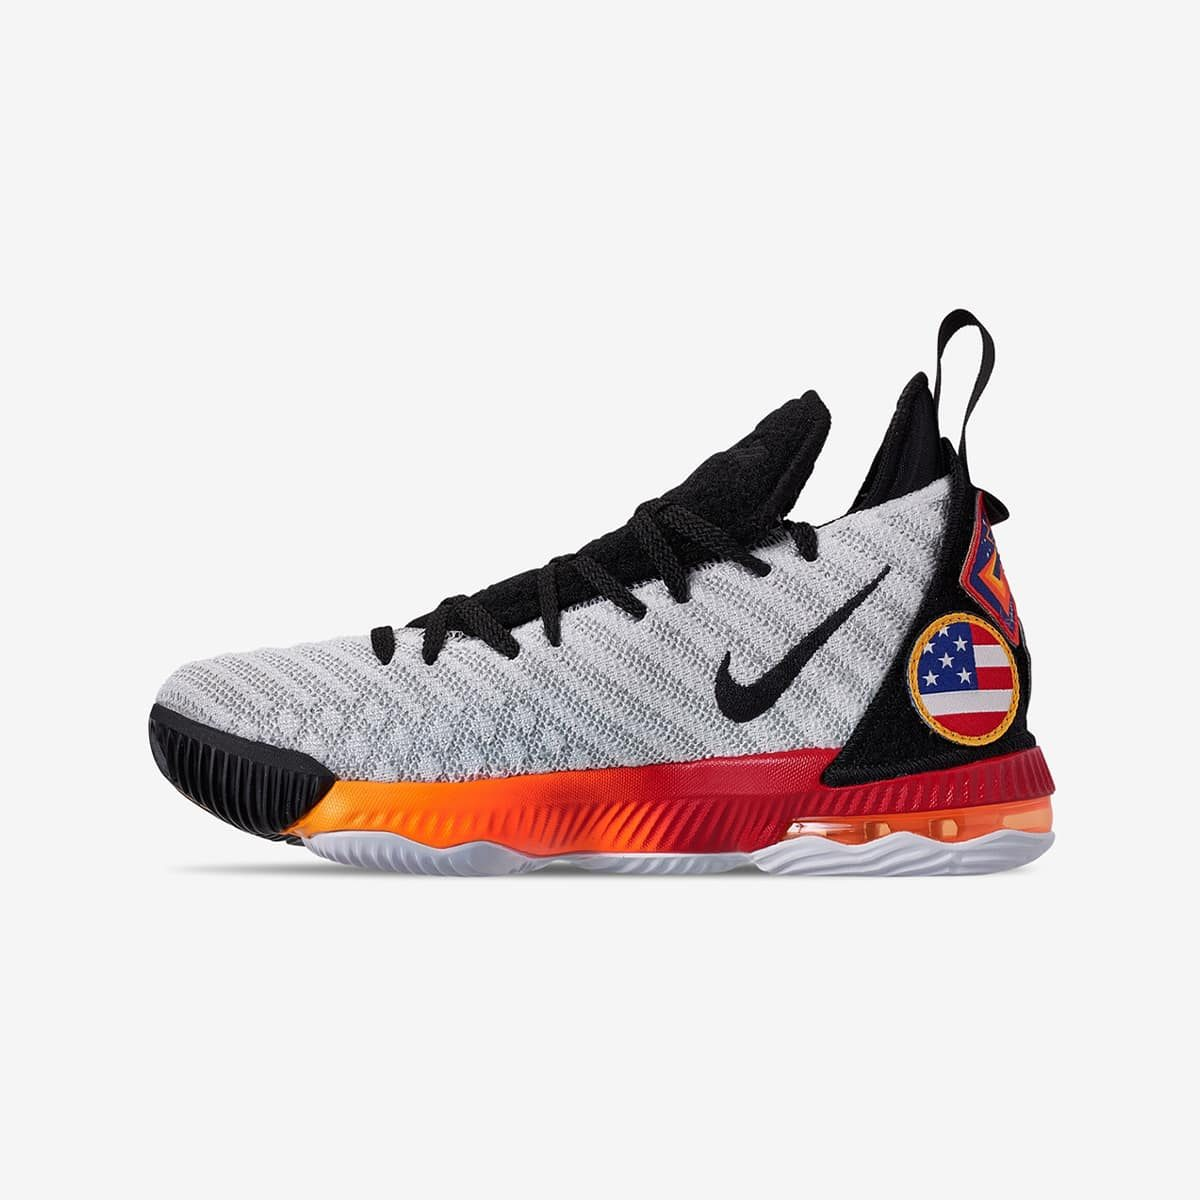 22060a1aa6c LeBron s Latest Sneaker Arrives in a Space Travel Theme - HOUSE OF ...